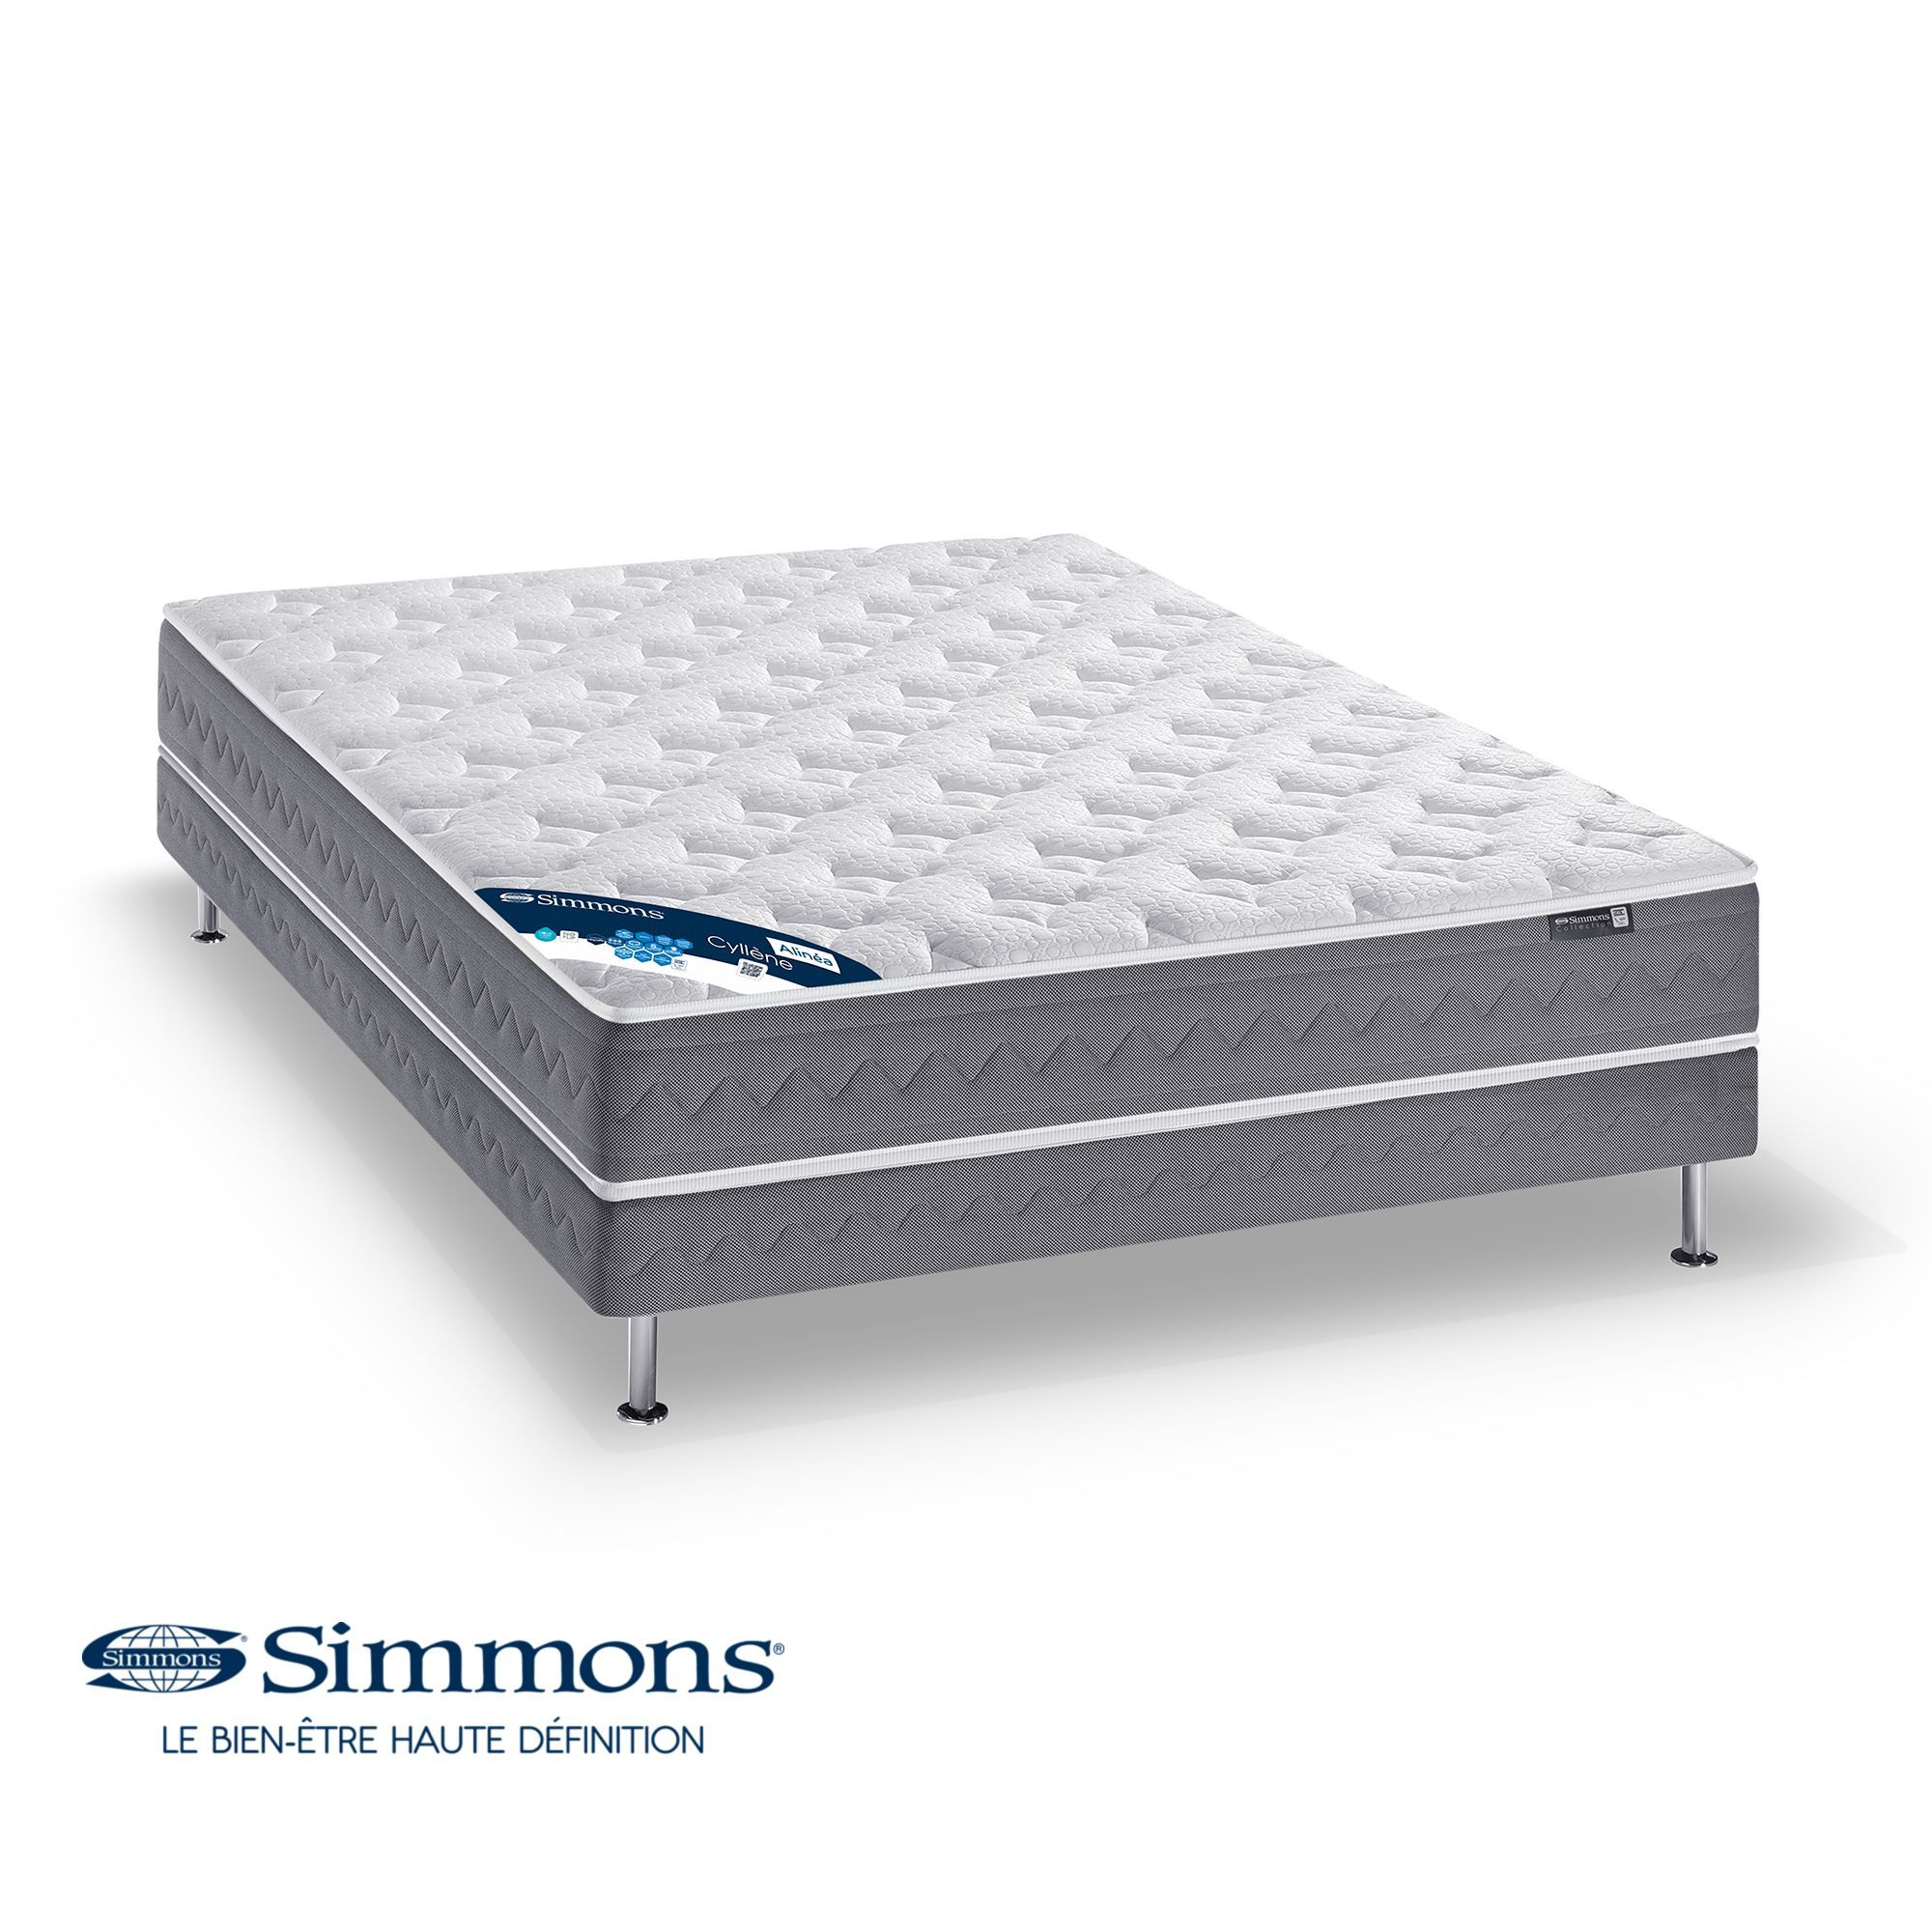 matelas ressorts ensach s simmons 25cm cyllene les matelas les matelas et sommiers. Black Bedroom Furniture Sets. Home Design Ideas